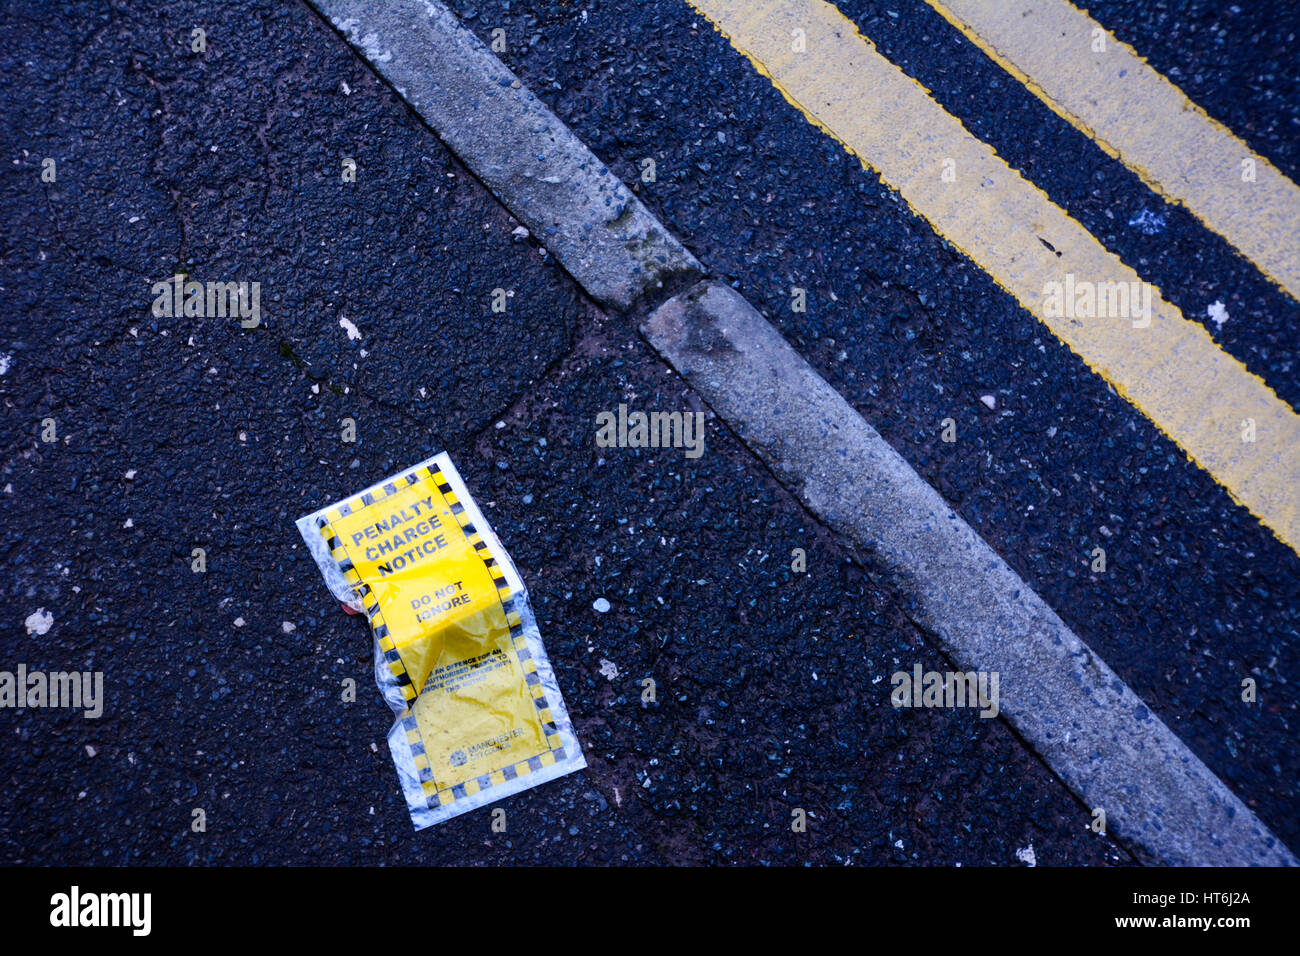 Discarded Penalty Charge Notice (Parking Ticket) - Stock Image